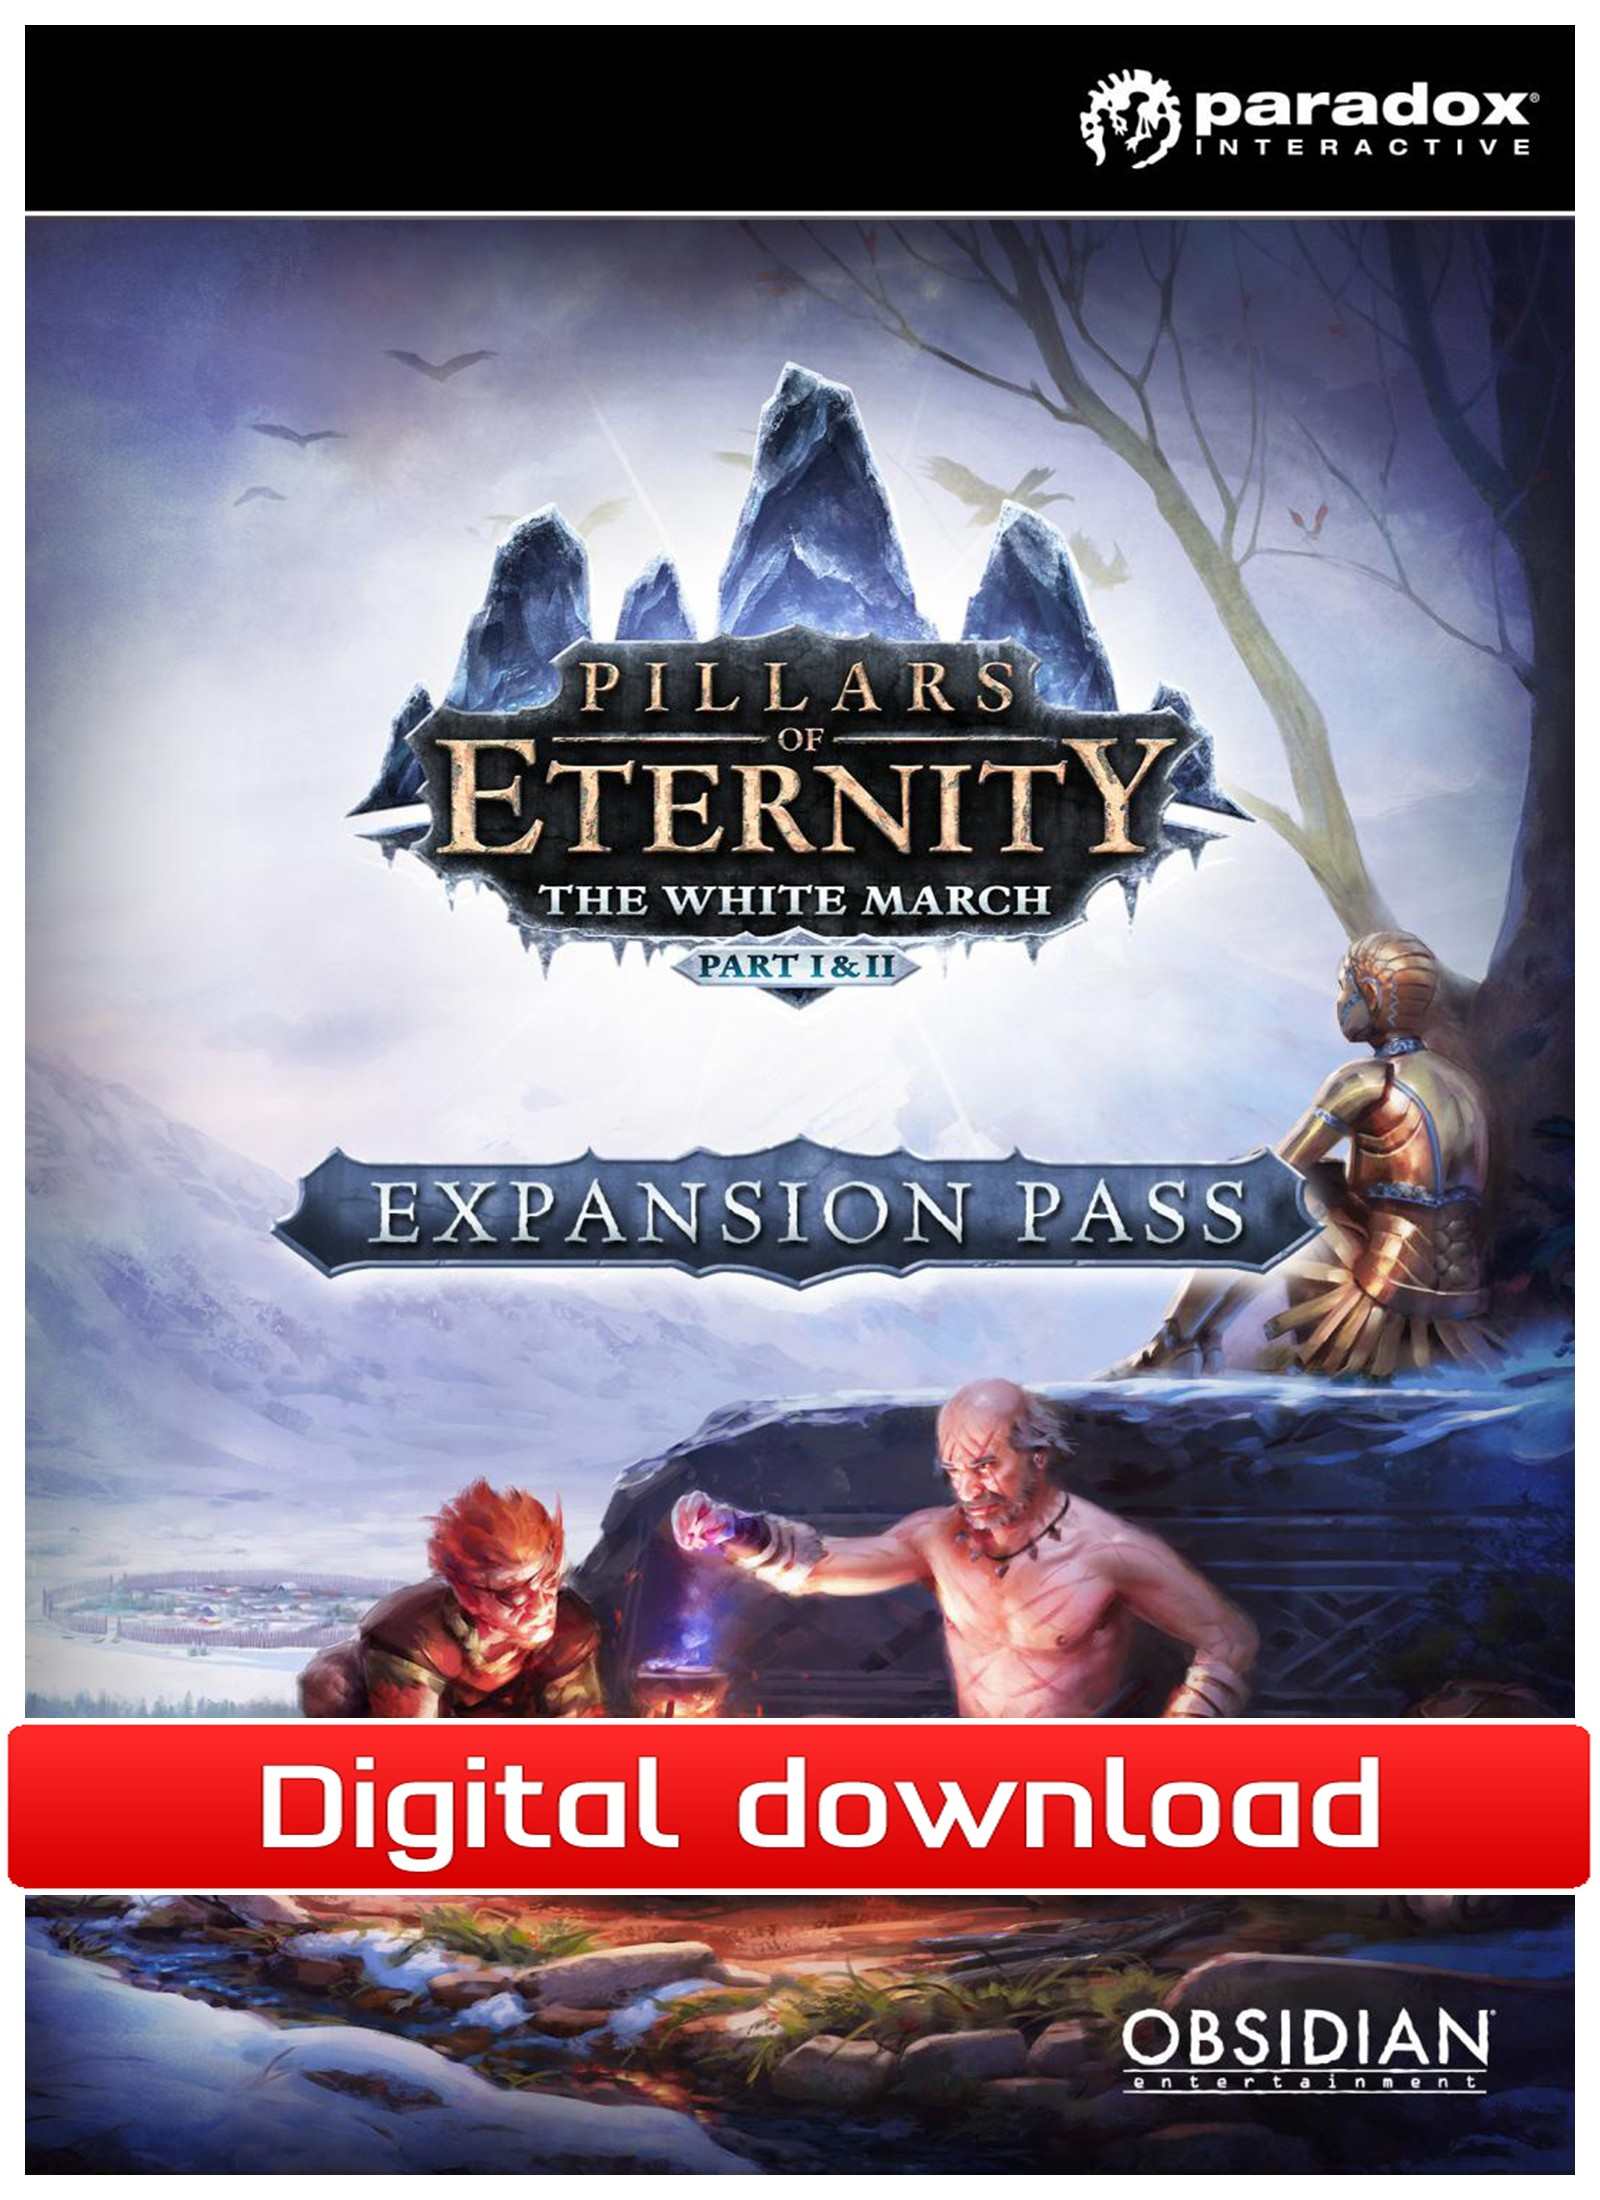 37617 : Pillars of Eternity: Expansion Pass (PC nedlastning)